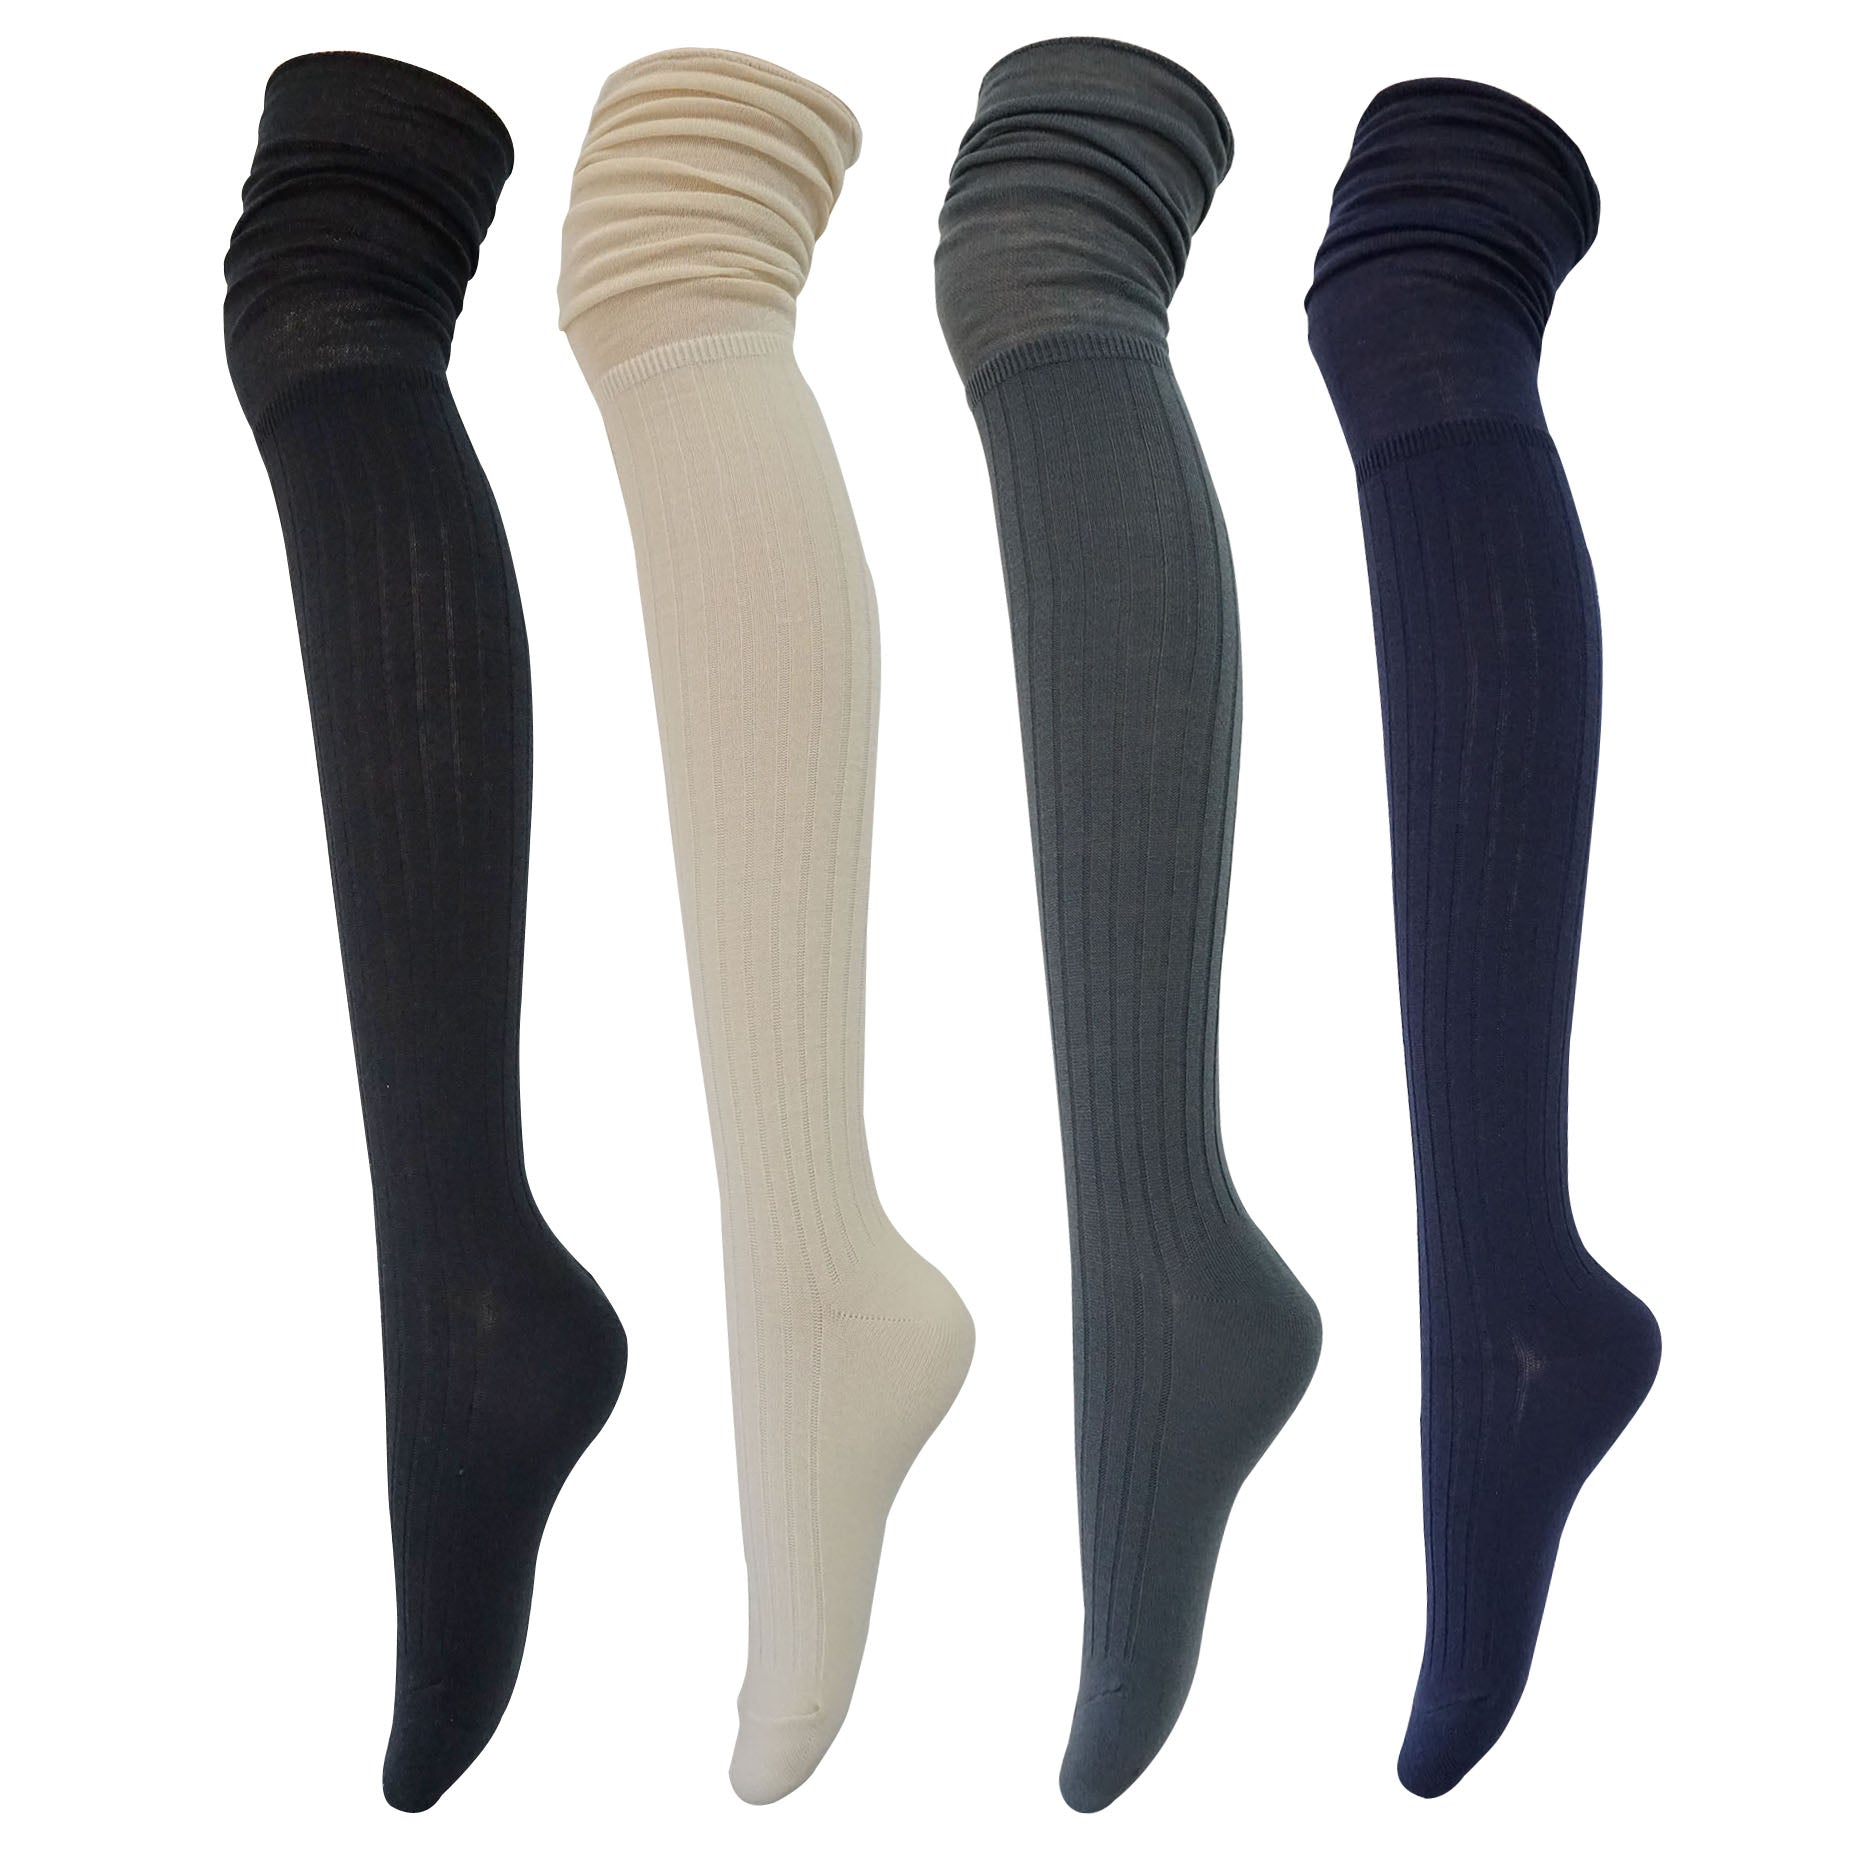 4Pack Women's Slouch Top Over The Knee Socks